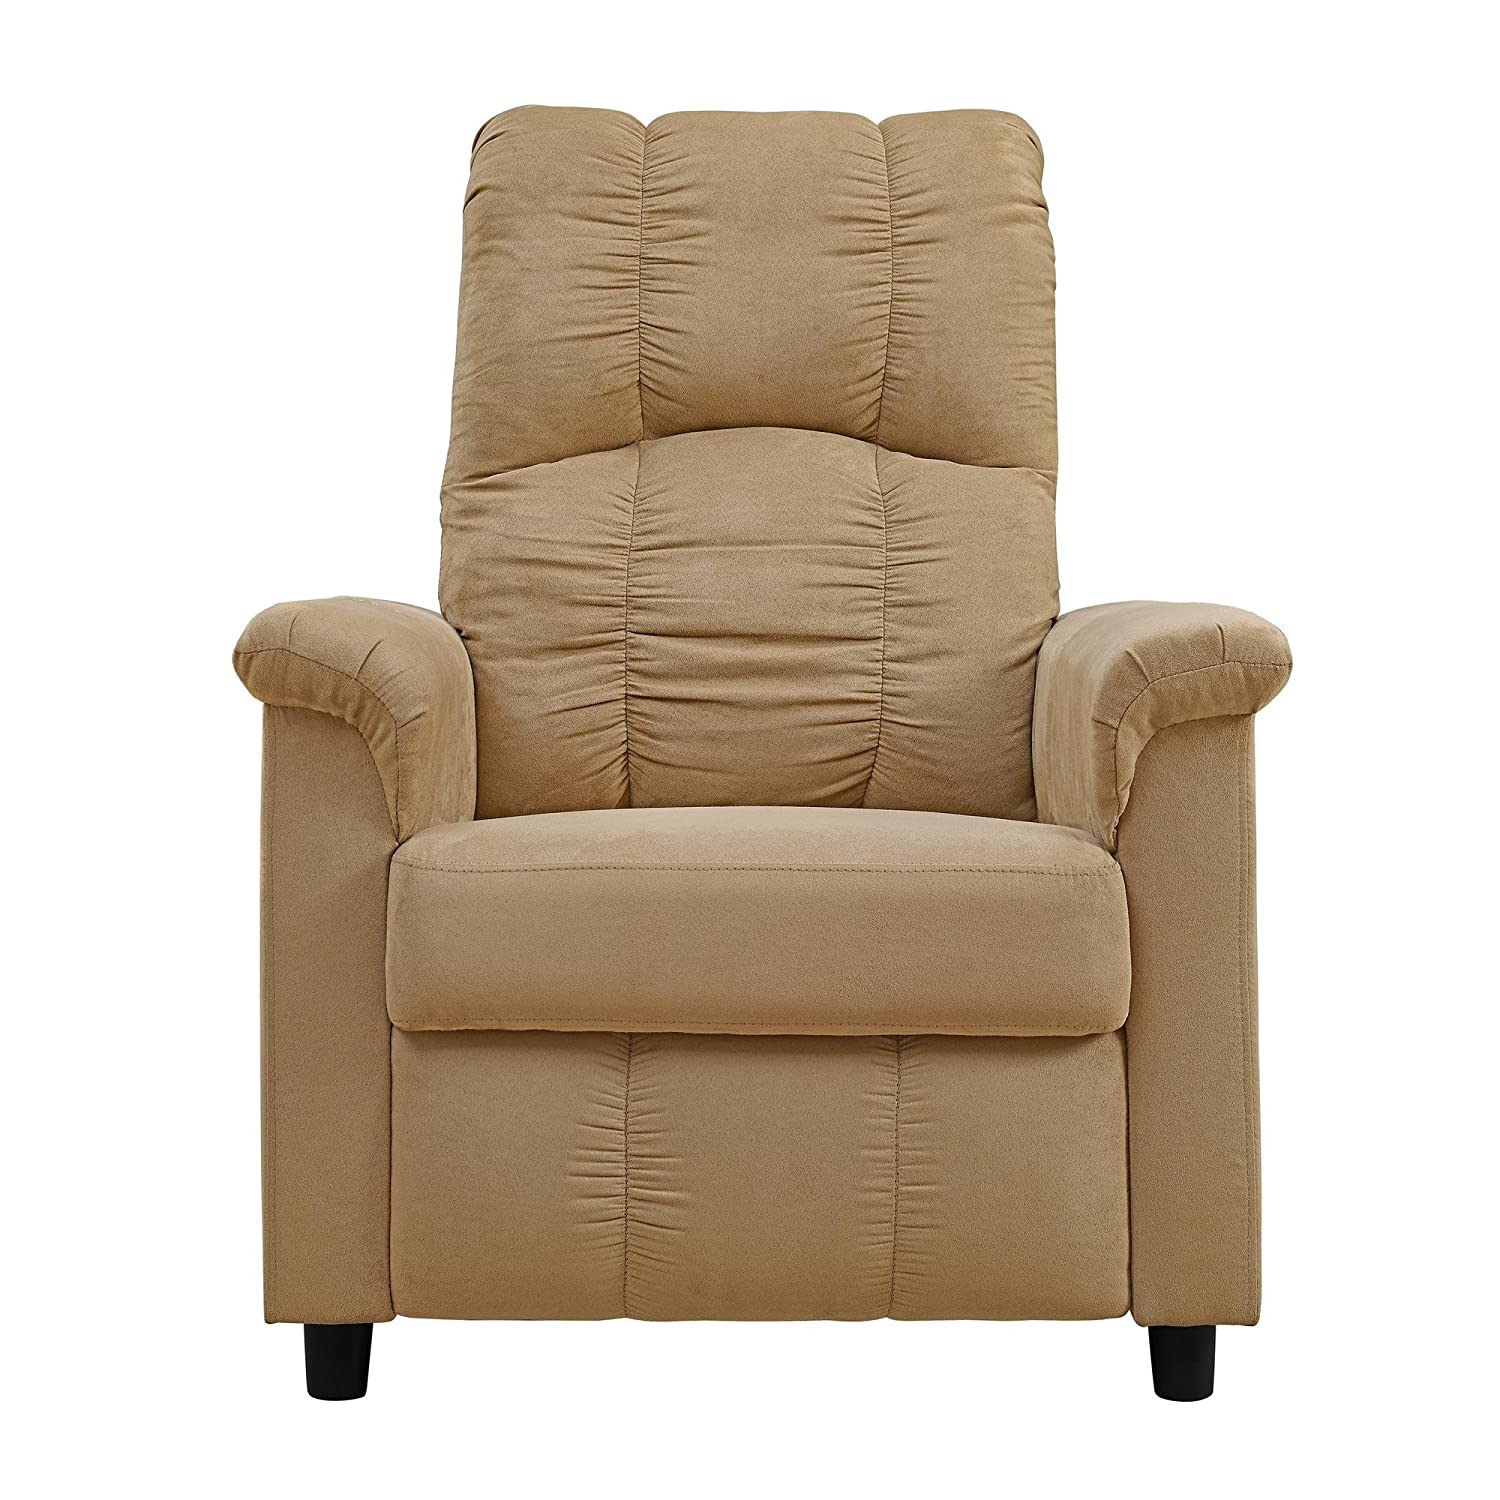 Dorel Living Slim Recliner